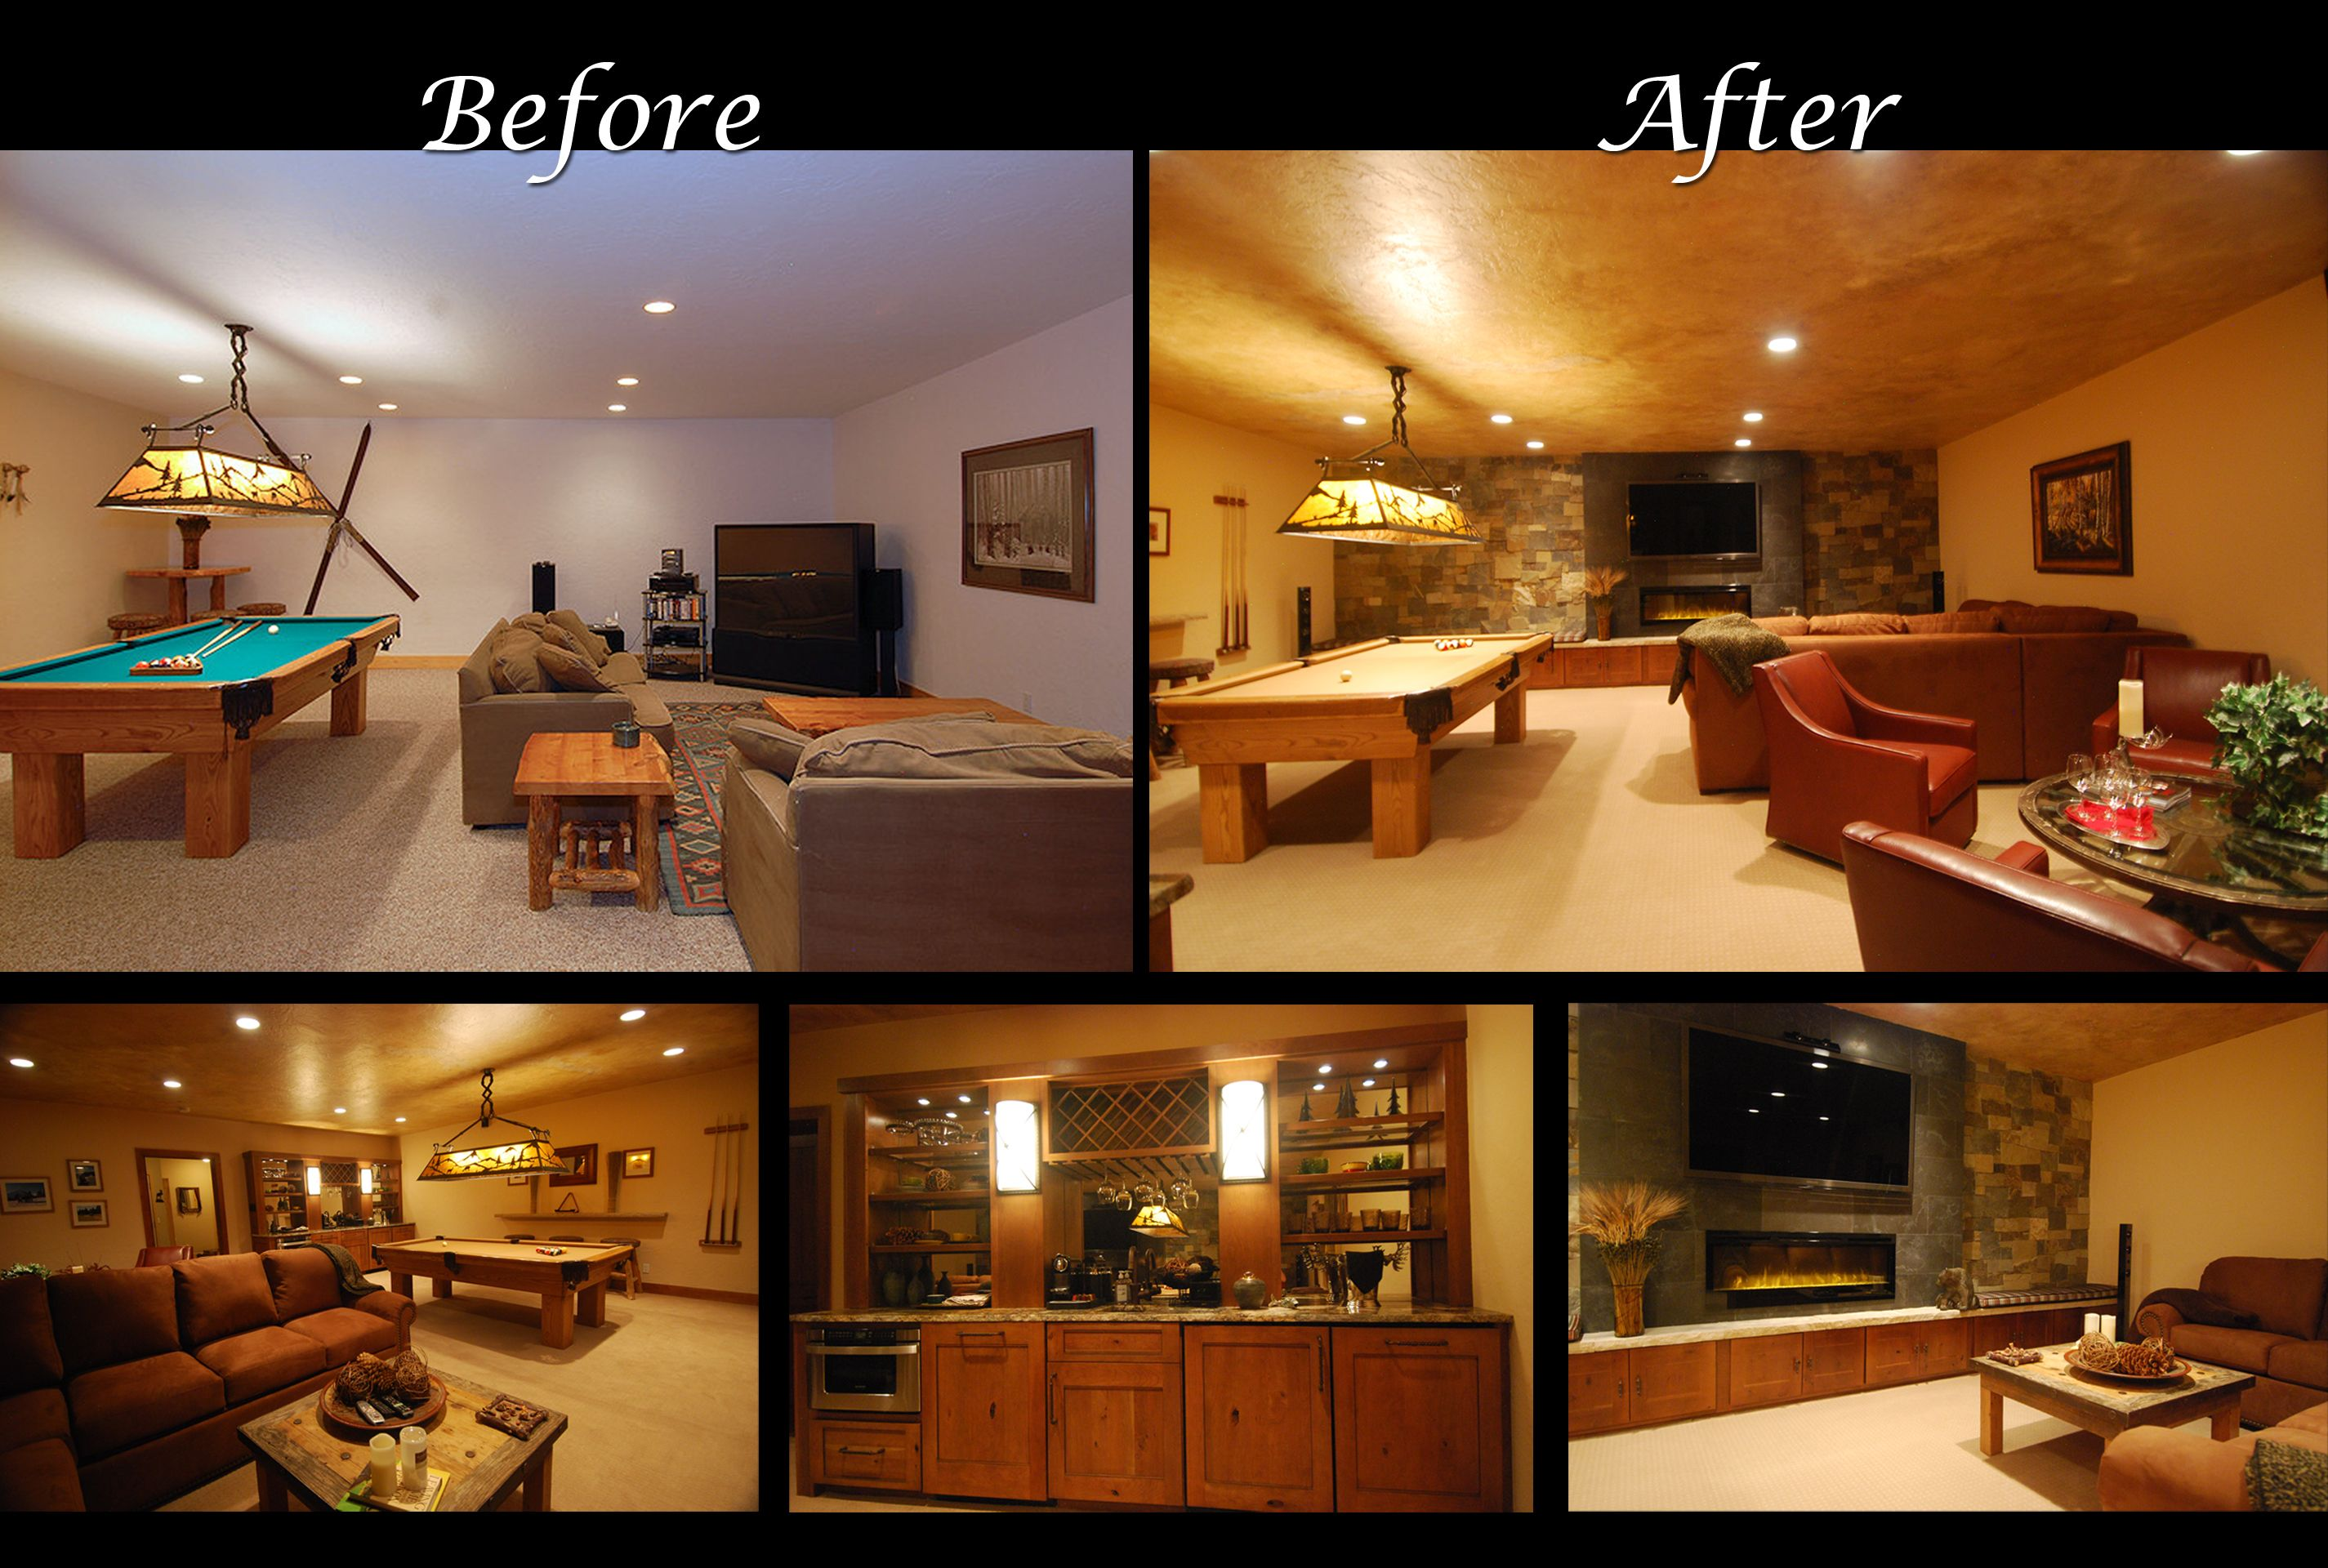 Game Room Before and After Mountain home interiors, Home